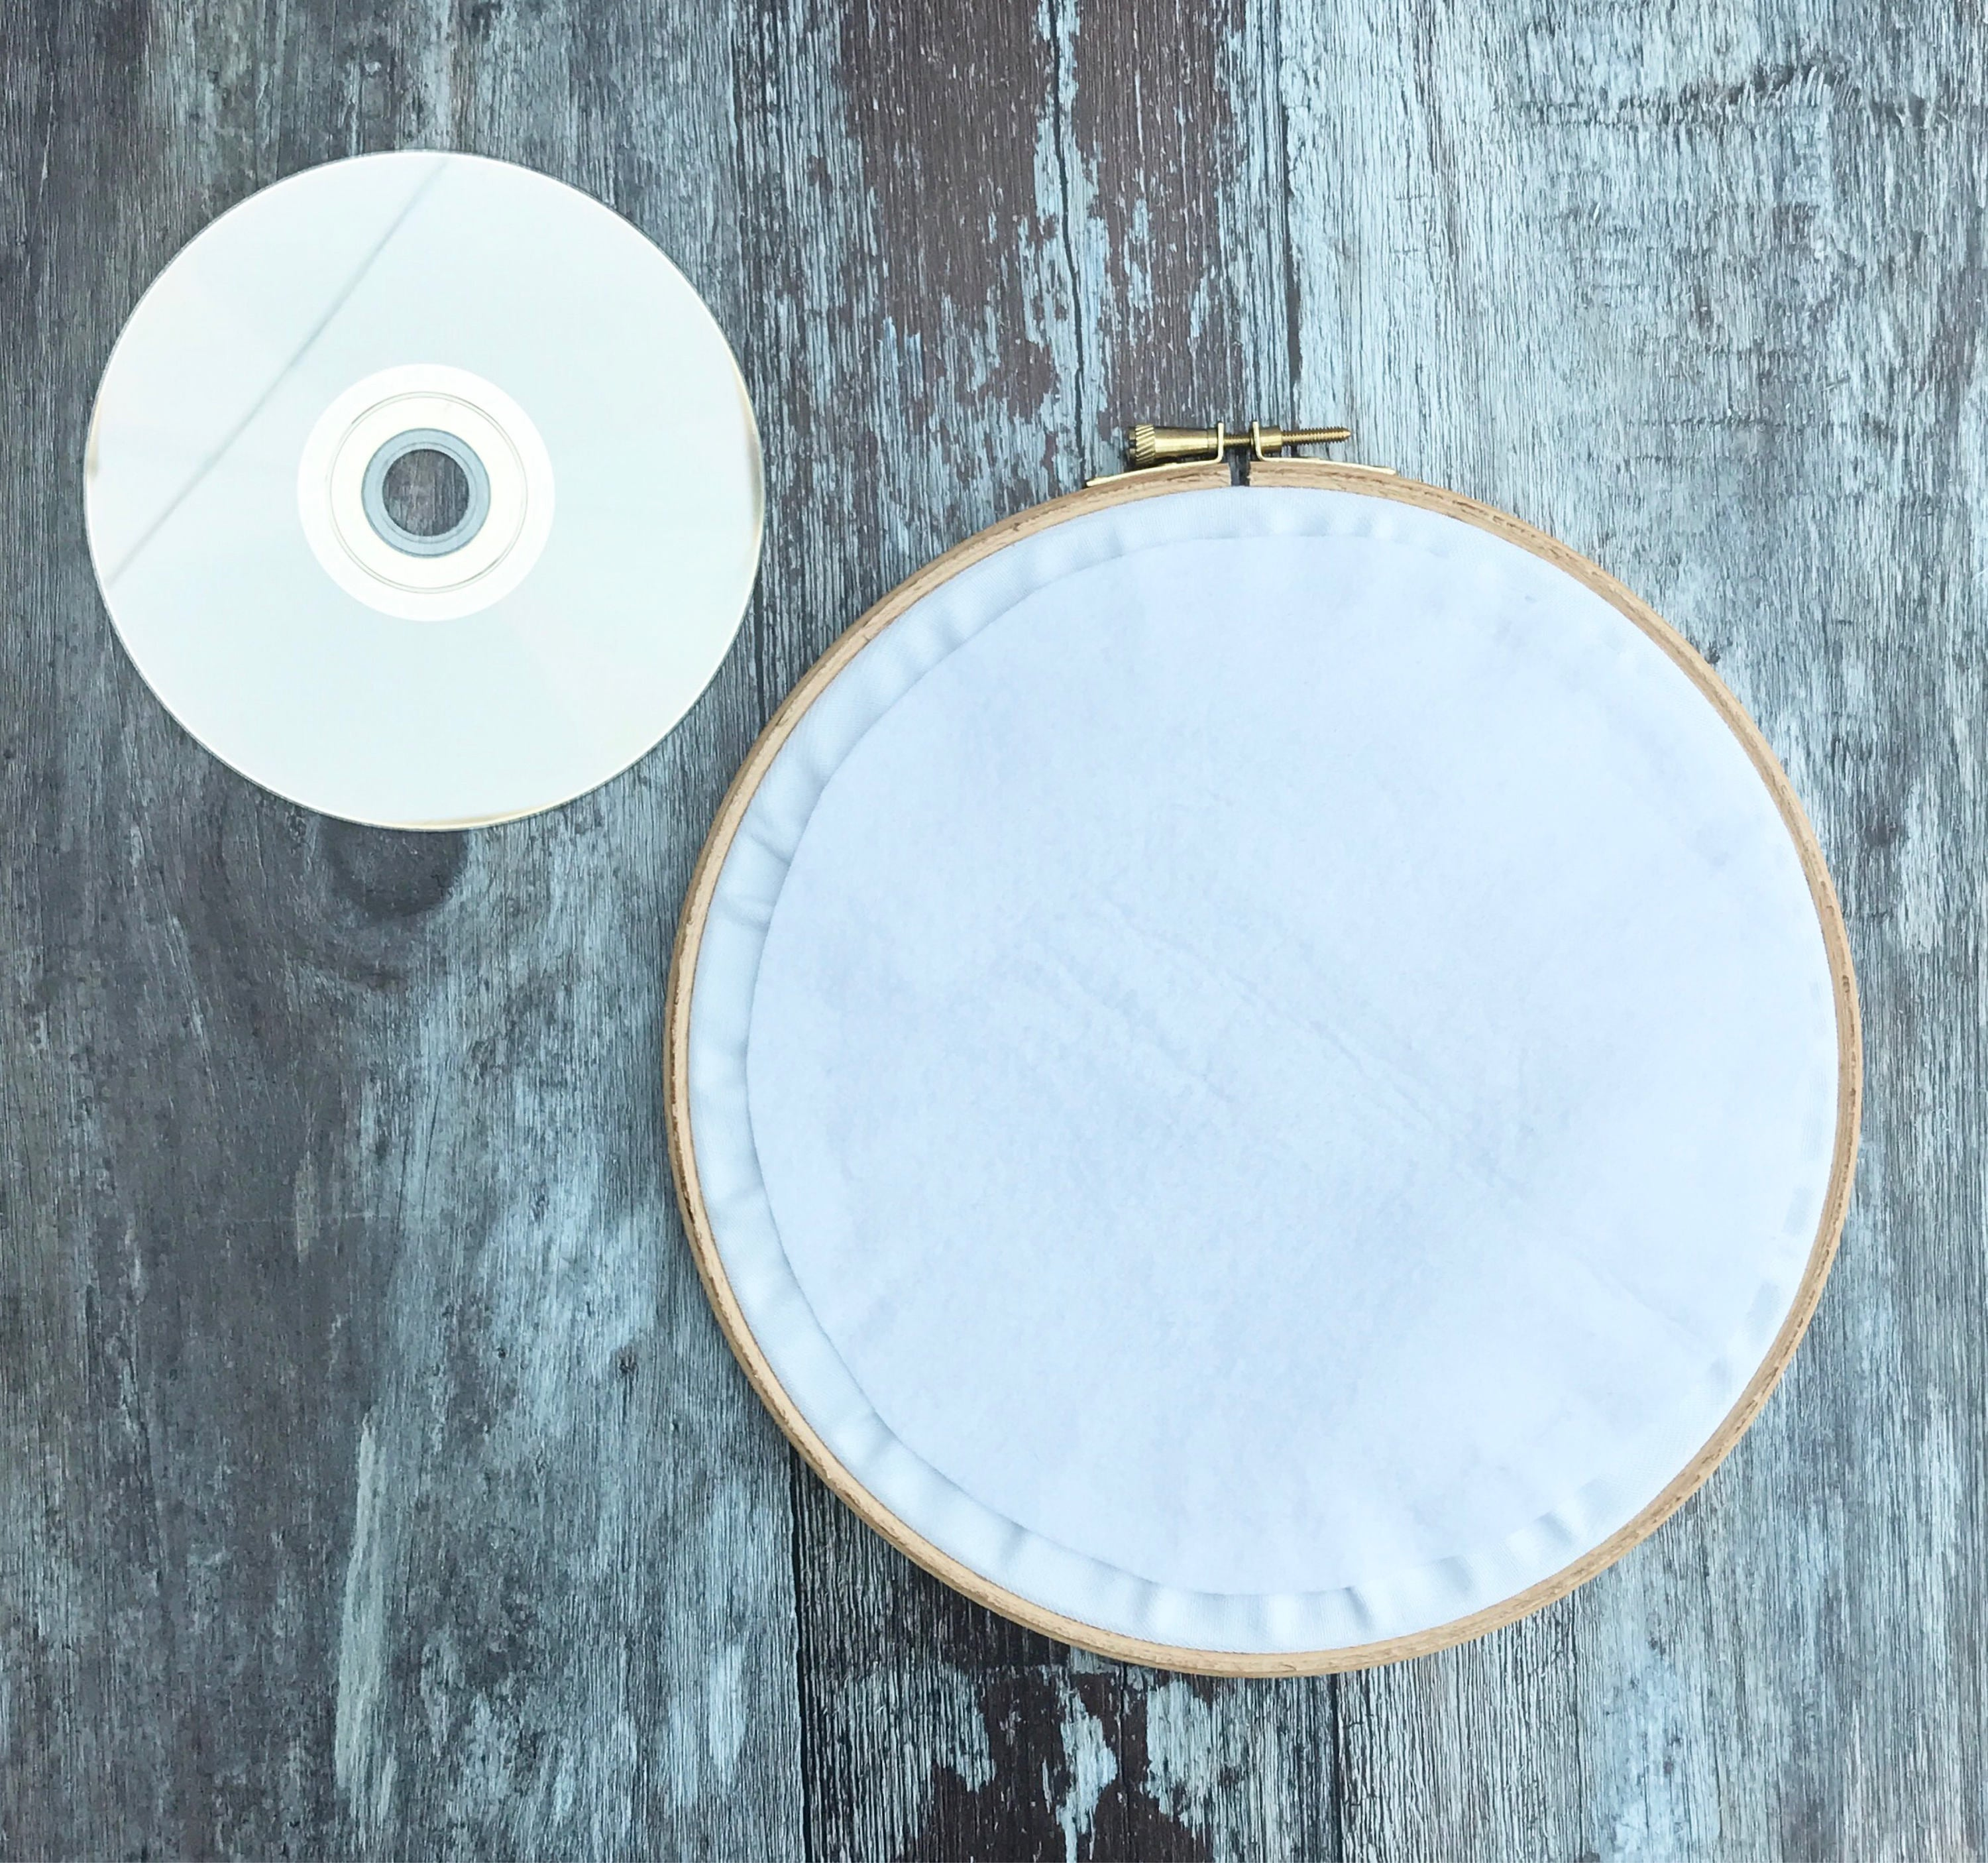 I am never not thinking of you, Virginia Woolf quote, Embroidery hoop art